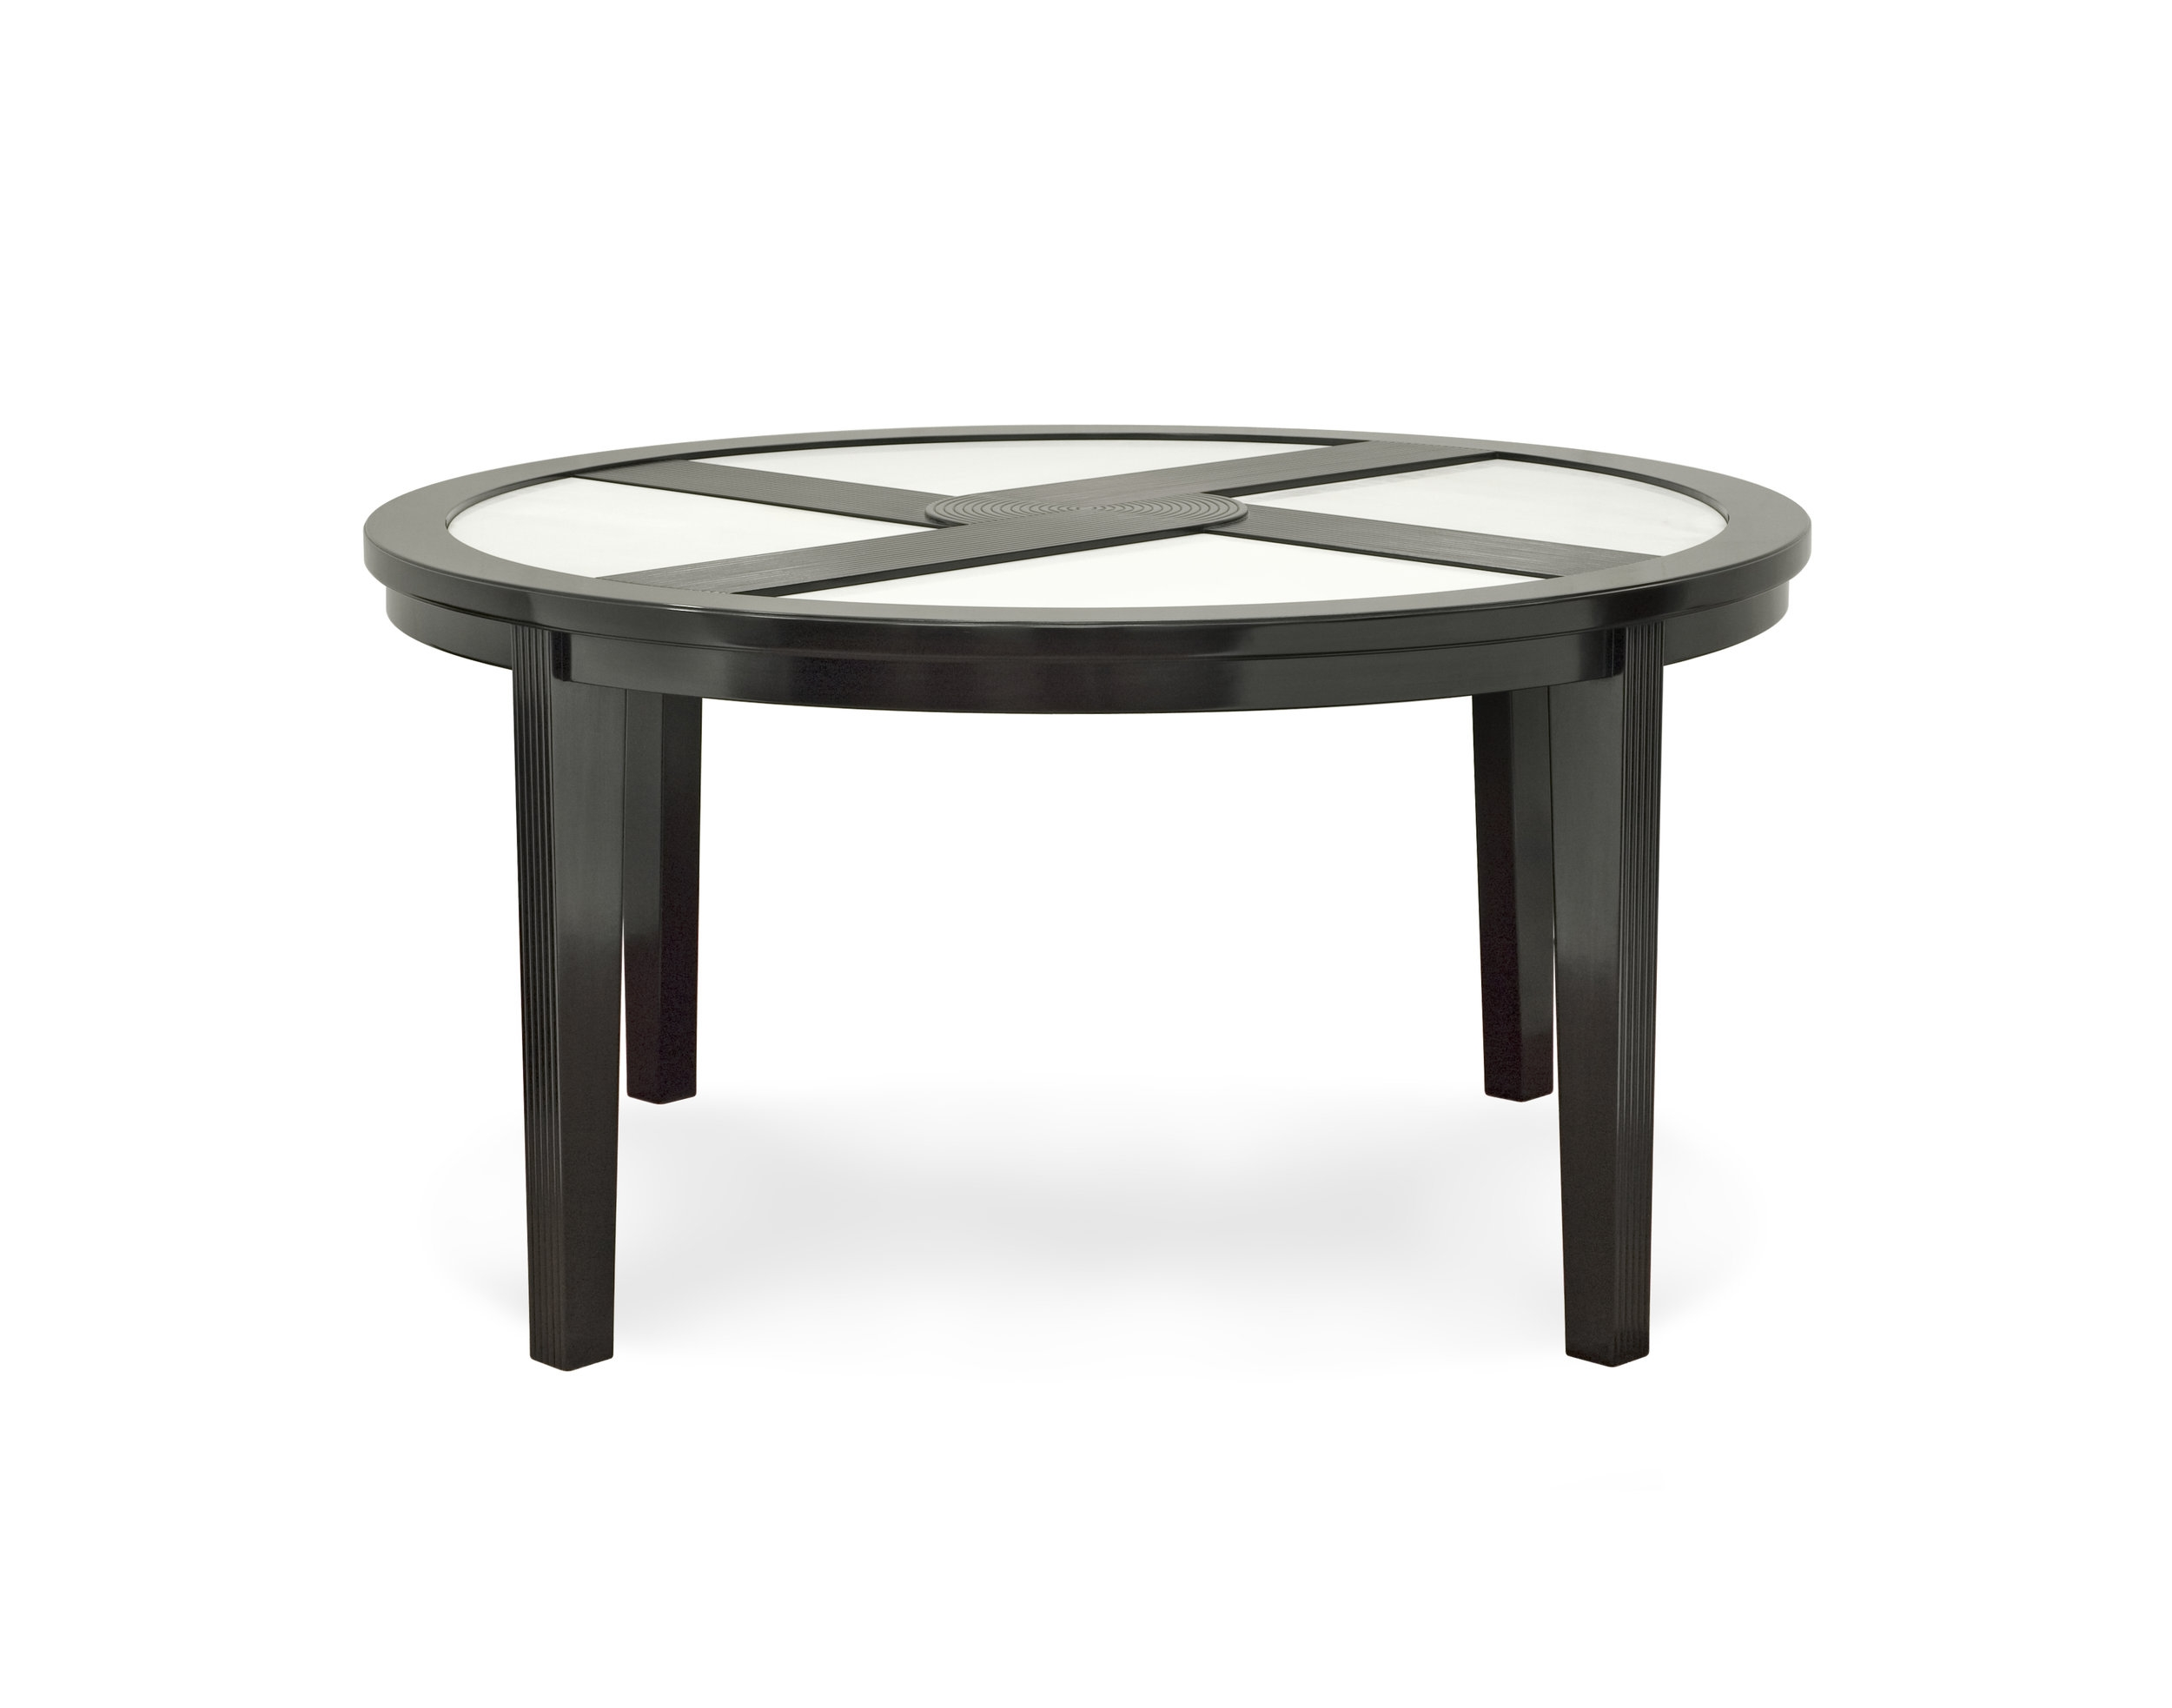 ....Art Deco Style furniture : Round Dining Table..艺术装饰风格家具: 圆餐台....